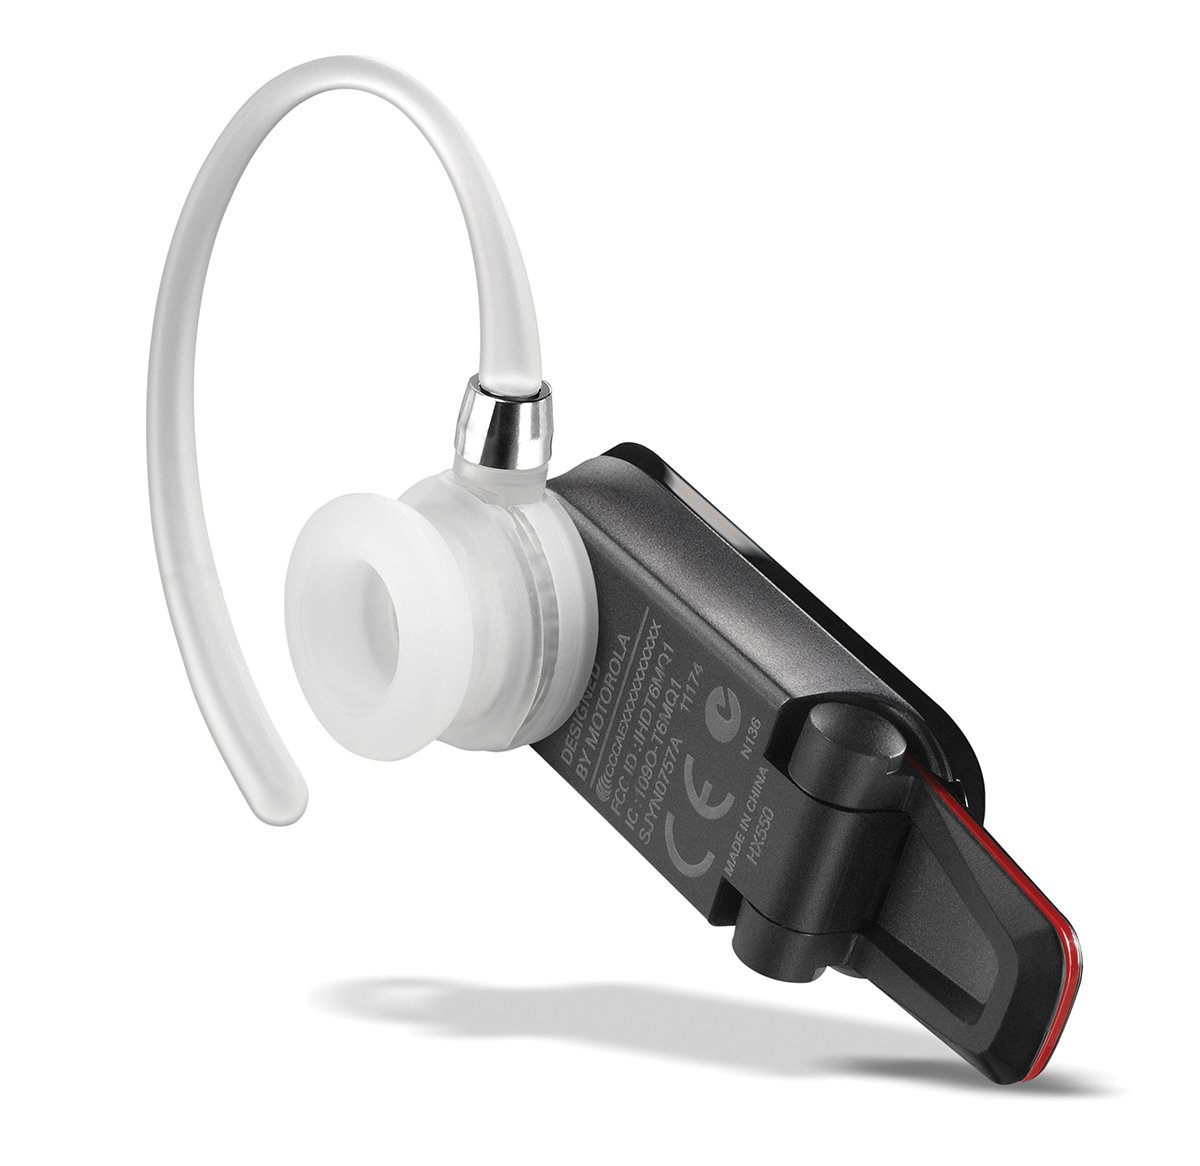 3a1e0d44251 Amazon.com: Motorola HX550 Universal Bluetooth Headset - Retail Packaging -  Black: Cell Phones & Accessories